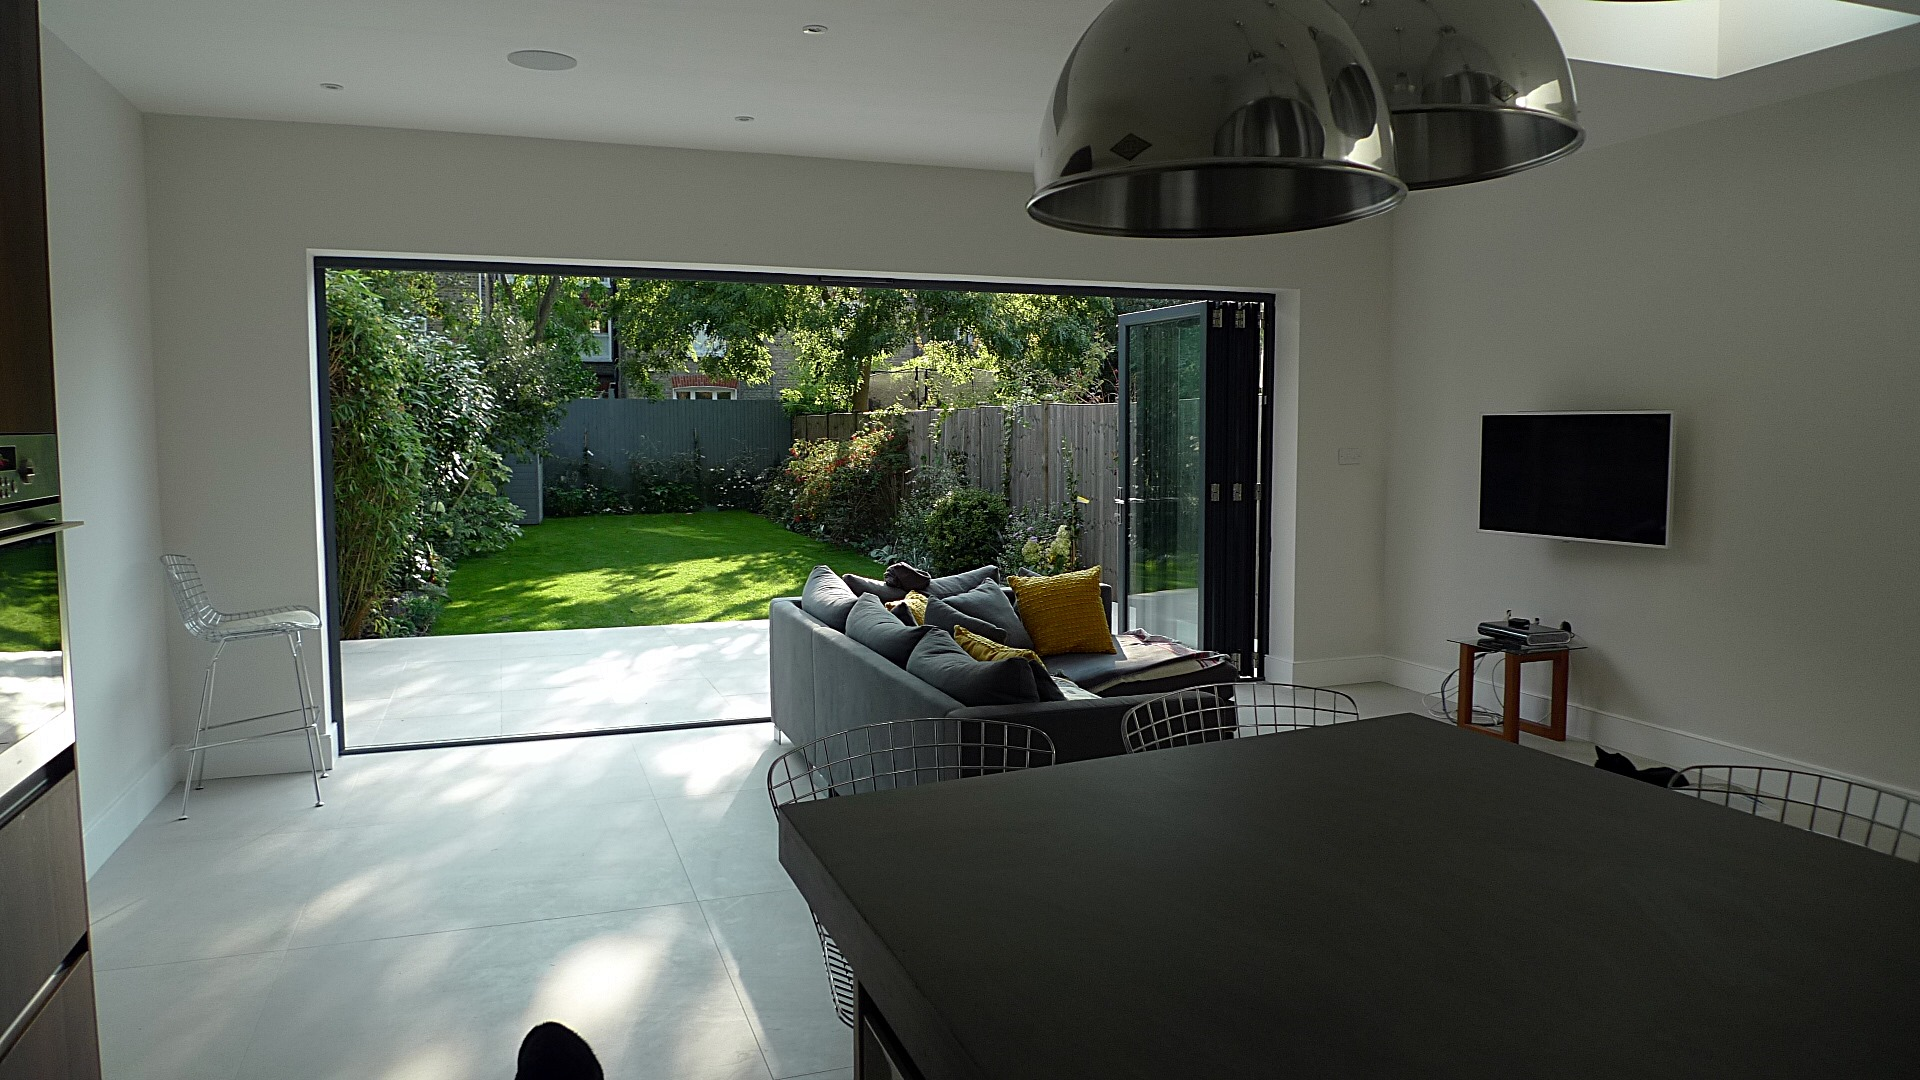 Exterior archives london garden blog for London house interior design